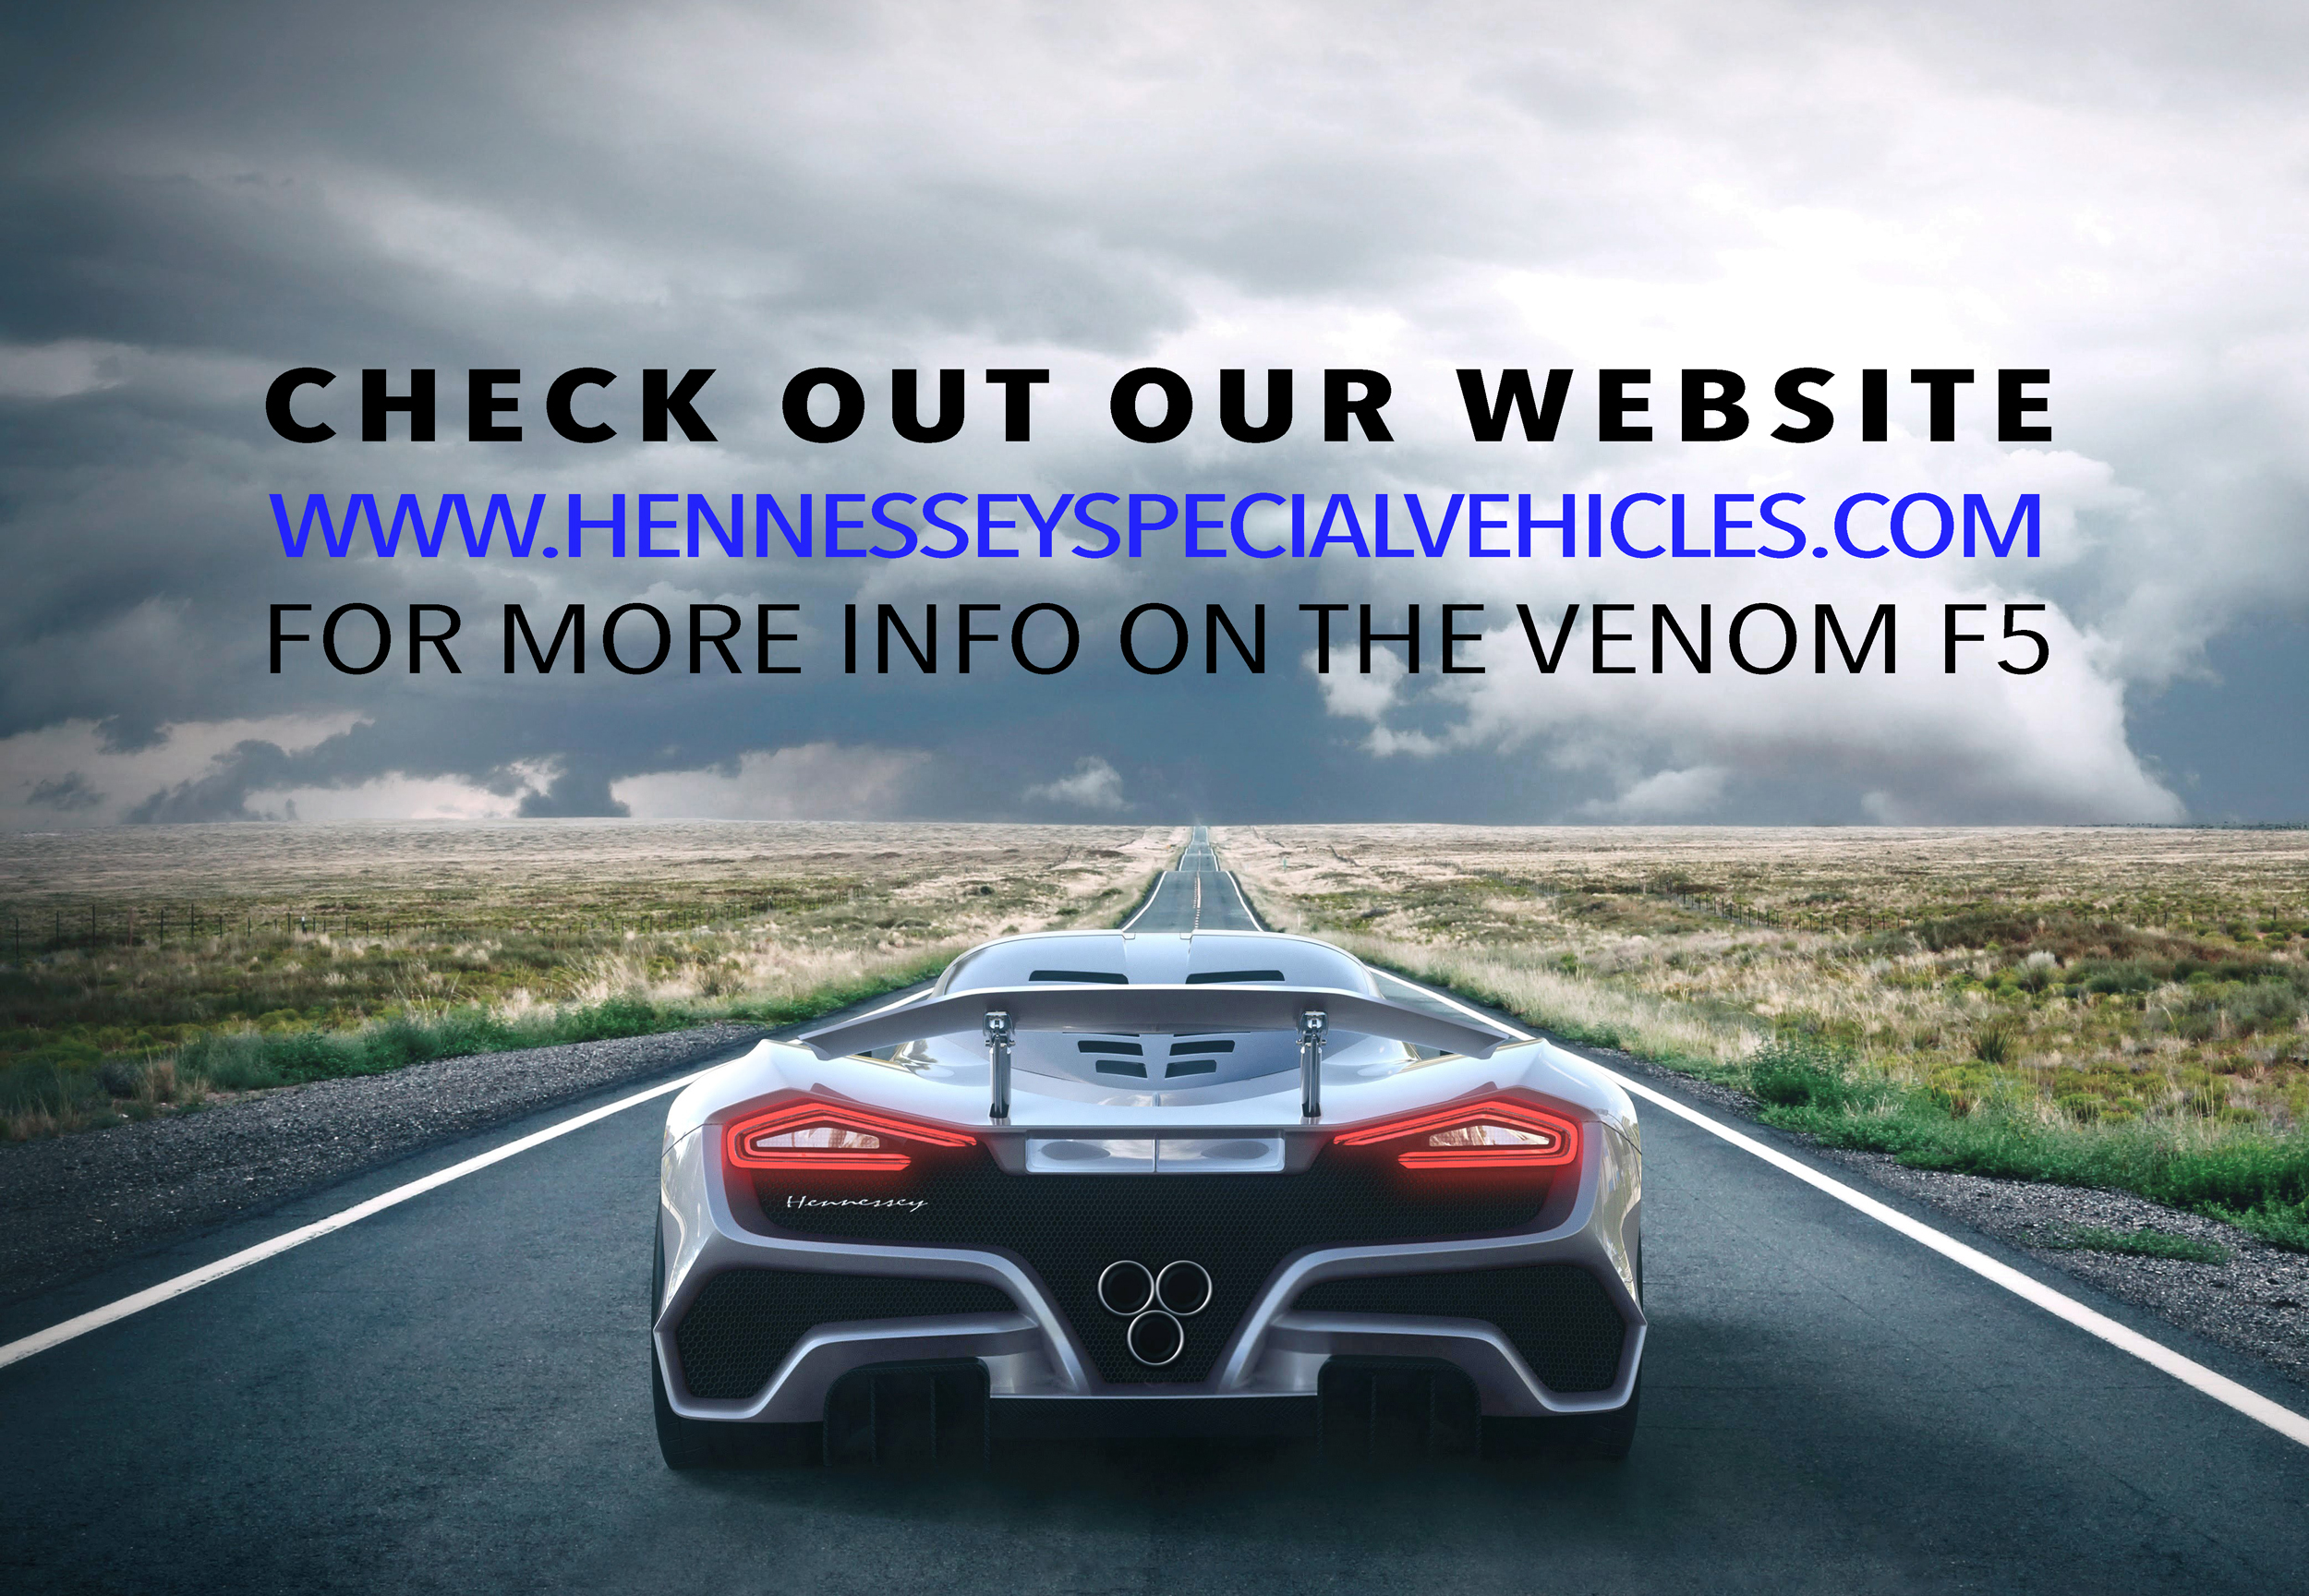 F5-Hennessey-Rear-Storm-Centered-CheckOutNewSite